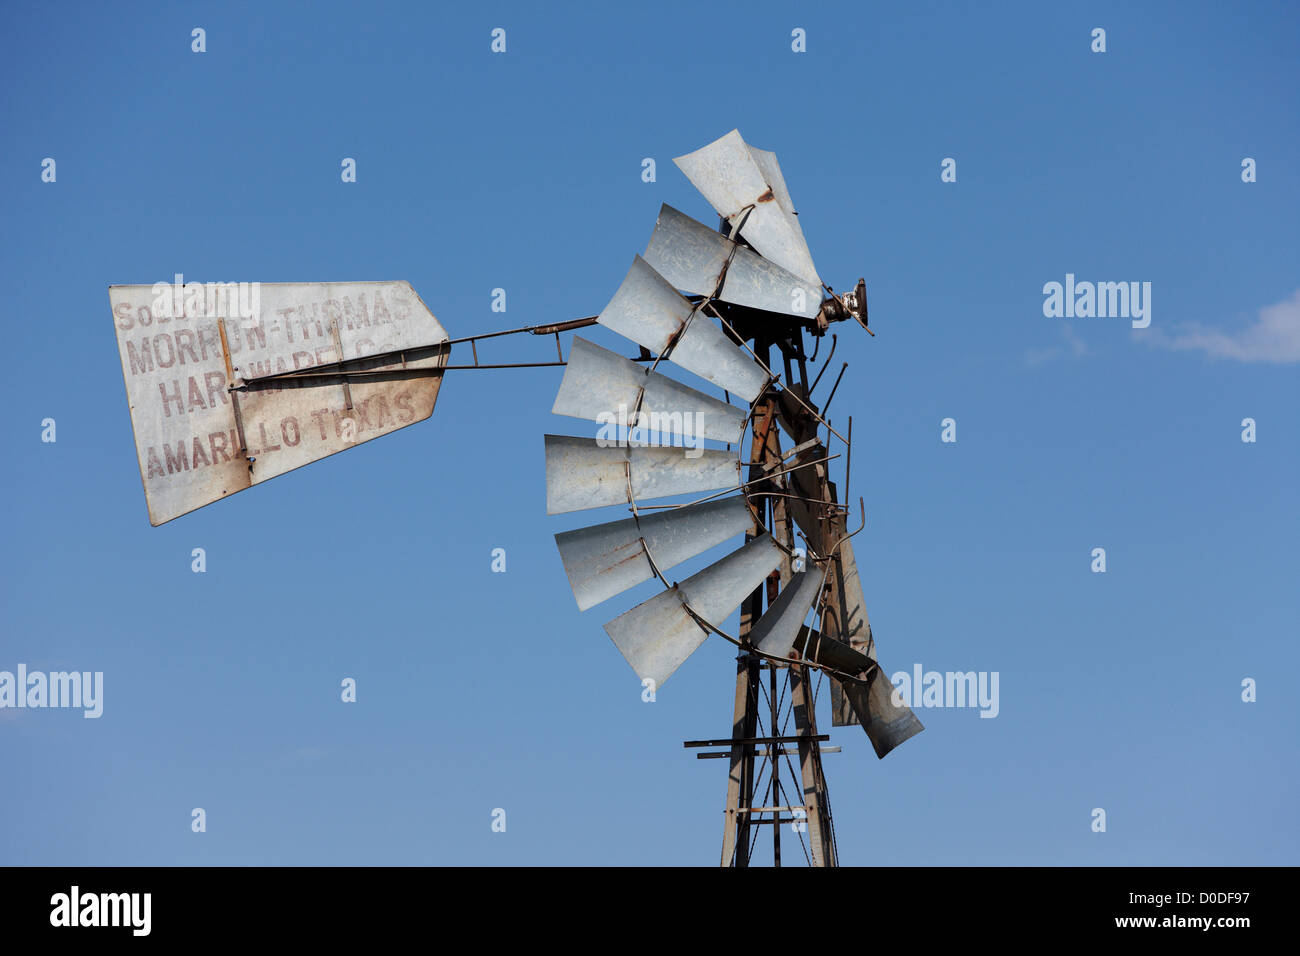 Detail of a windmill destroyed by extreme wind in Pampa, Texas. - Stock Image